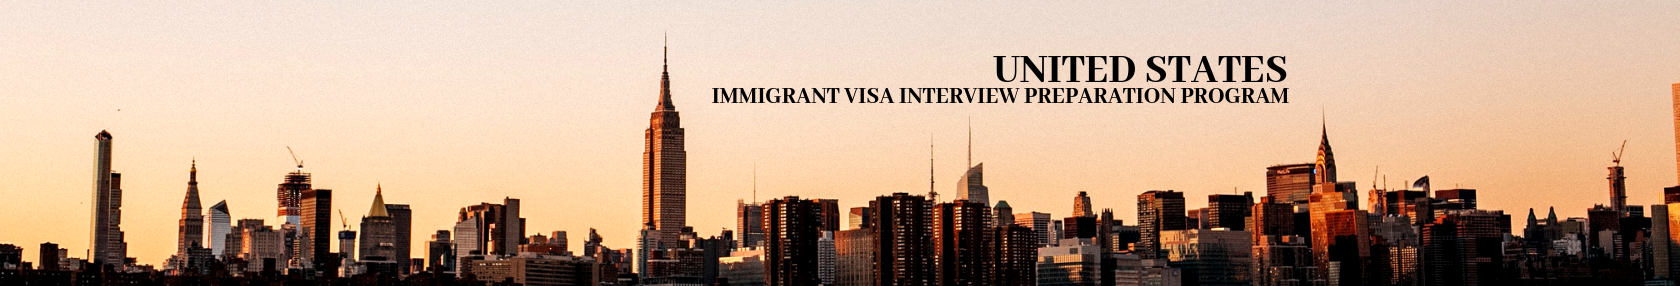 United States, Immigrant Visa Interview Preparation